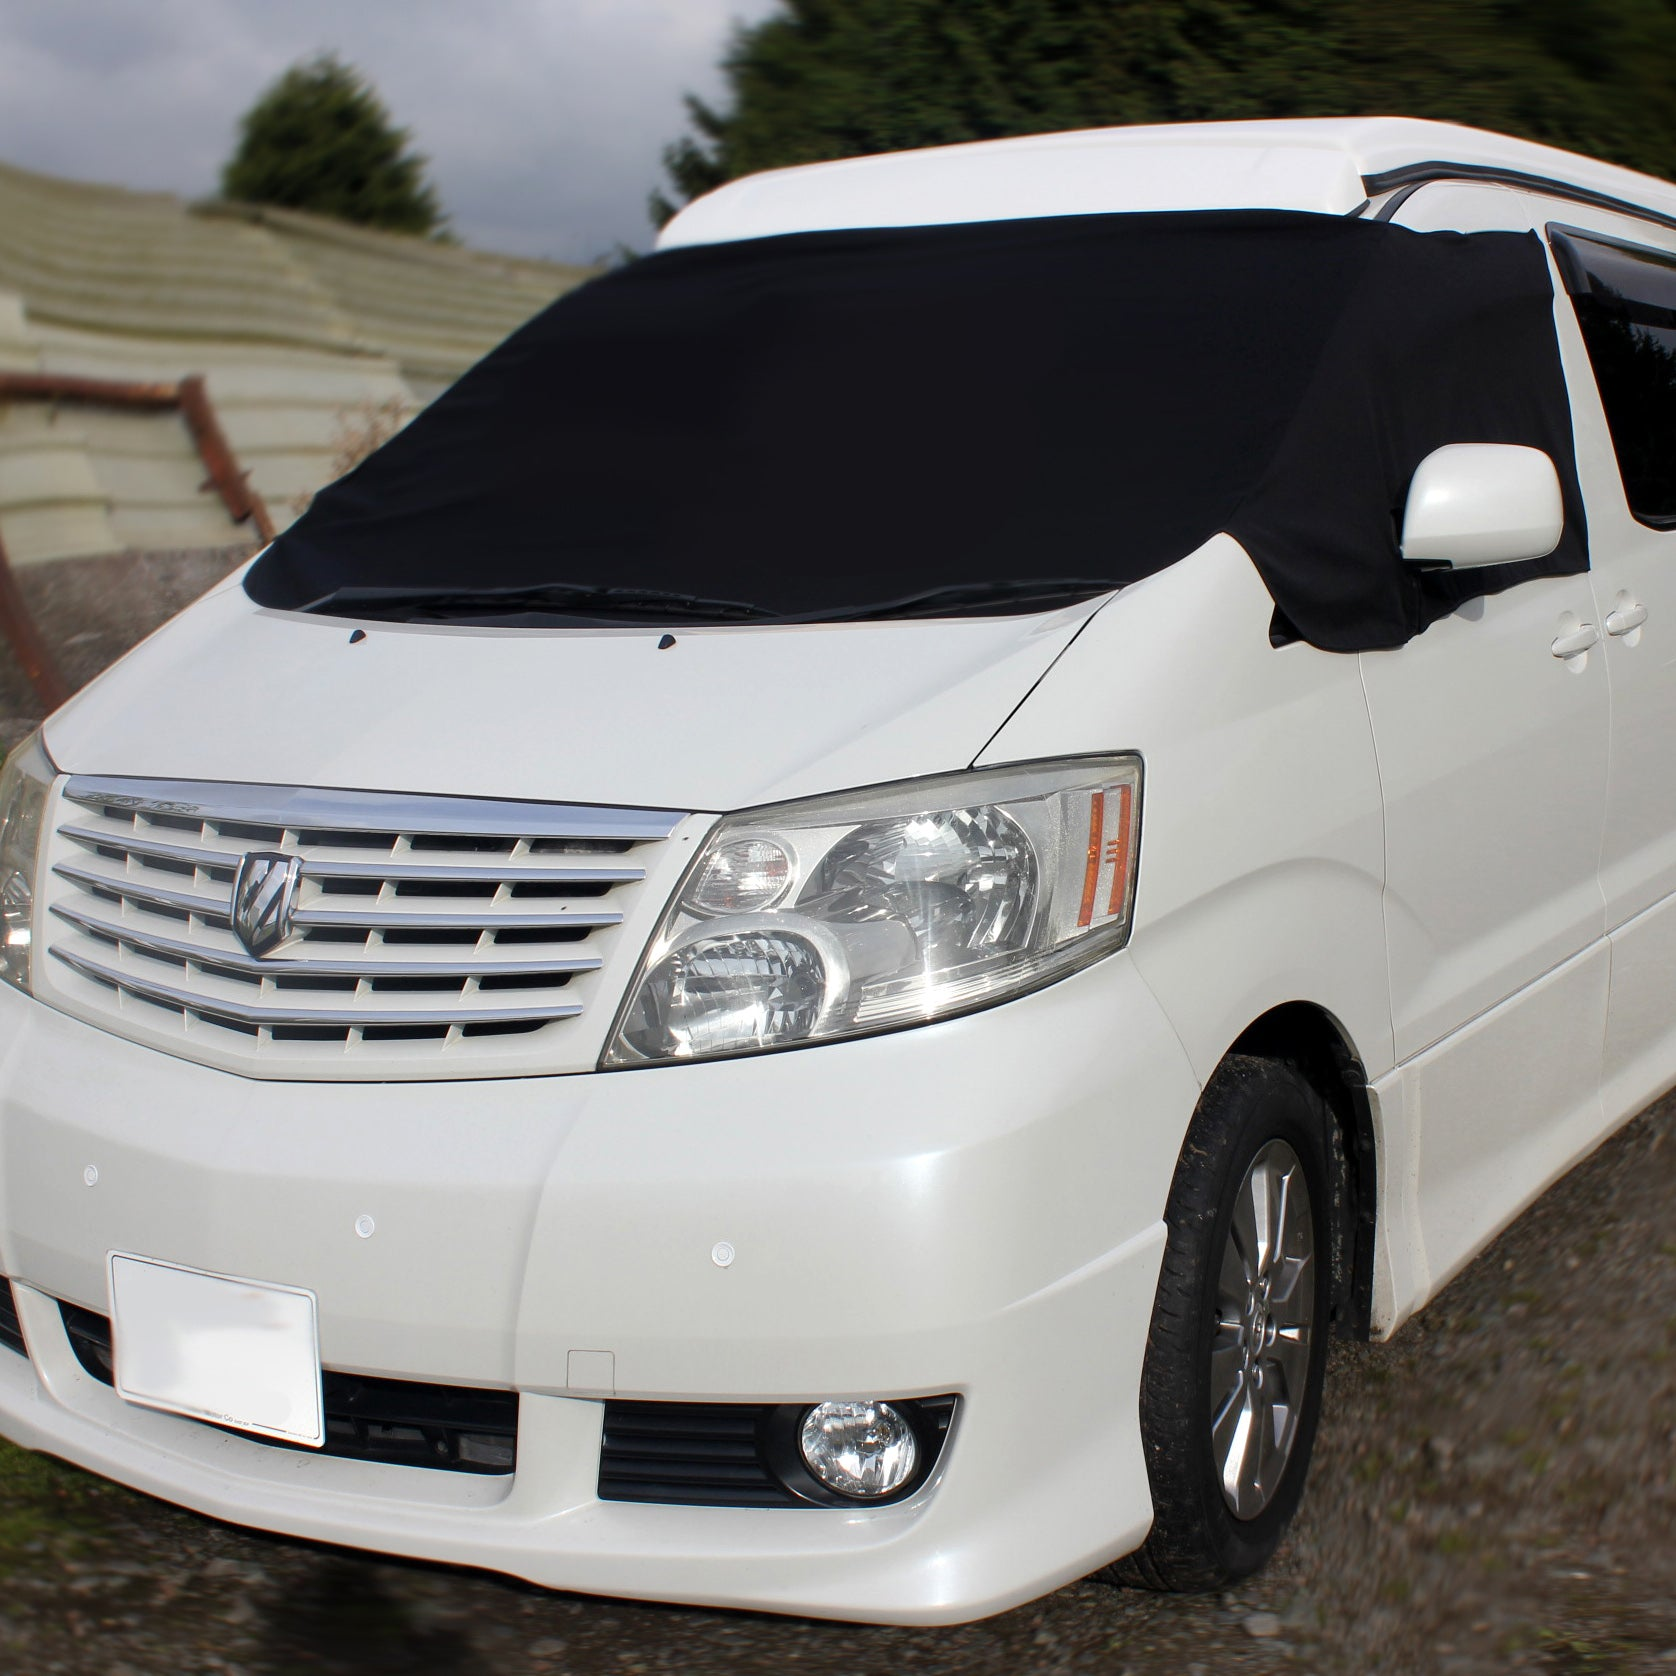 Toyota Alphard Screen Cover - Arthur Eyes